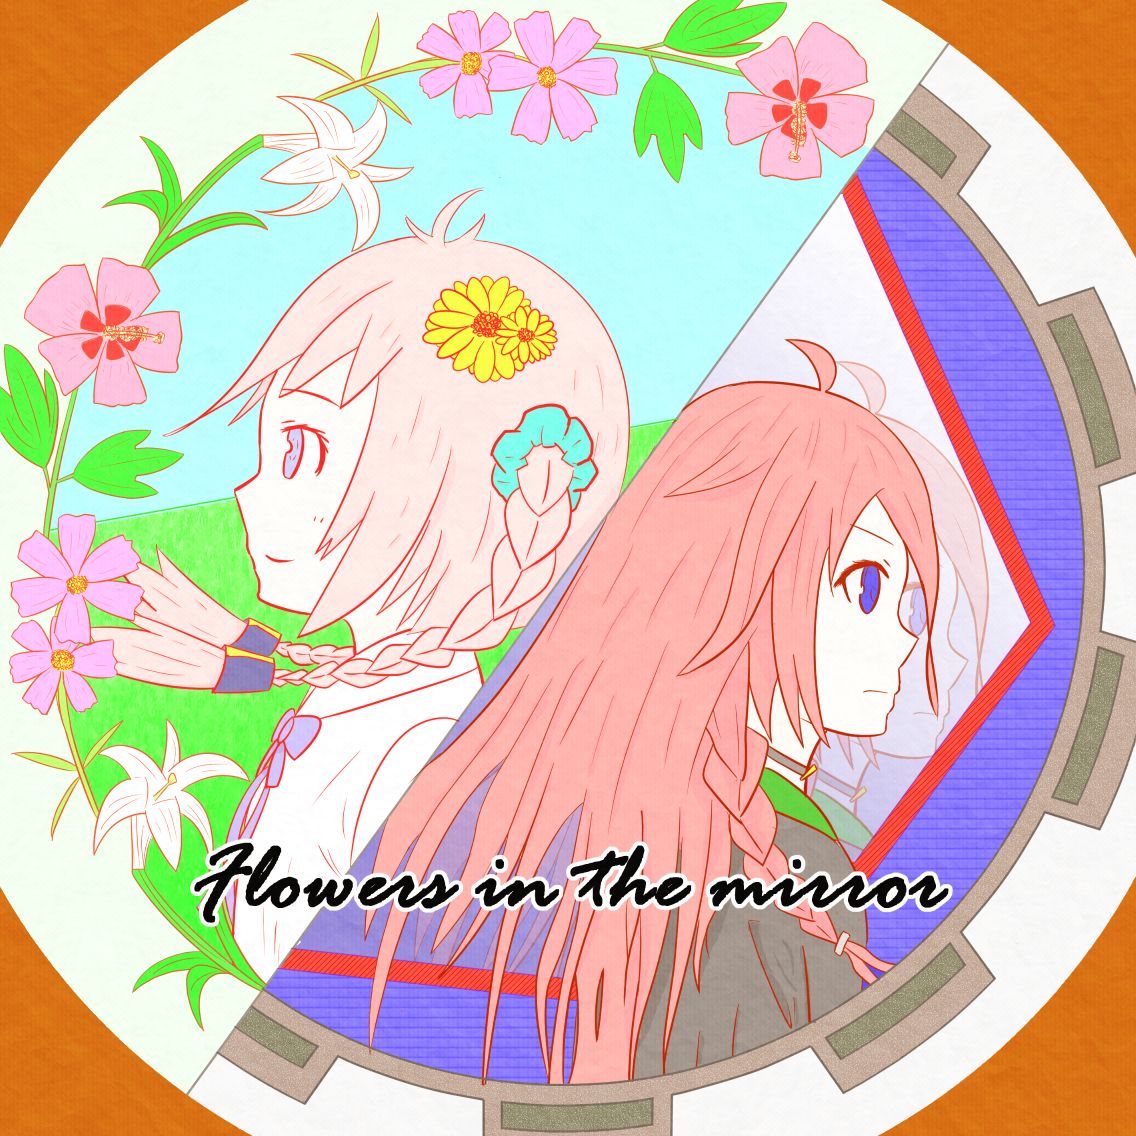 Flowers in the mirror ジャケット(v1.1)